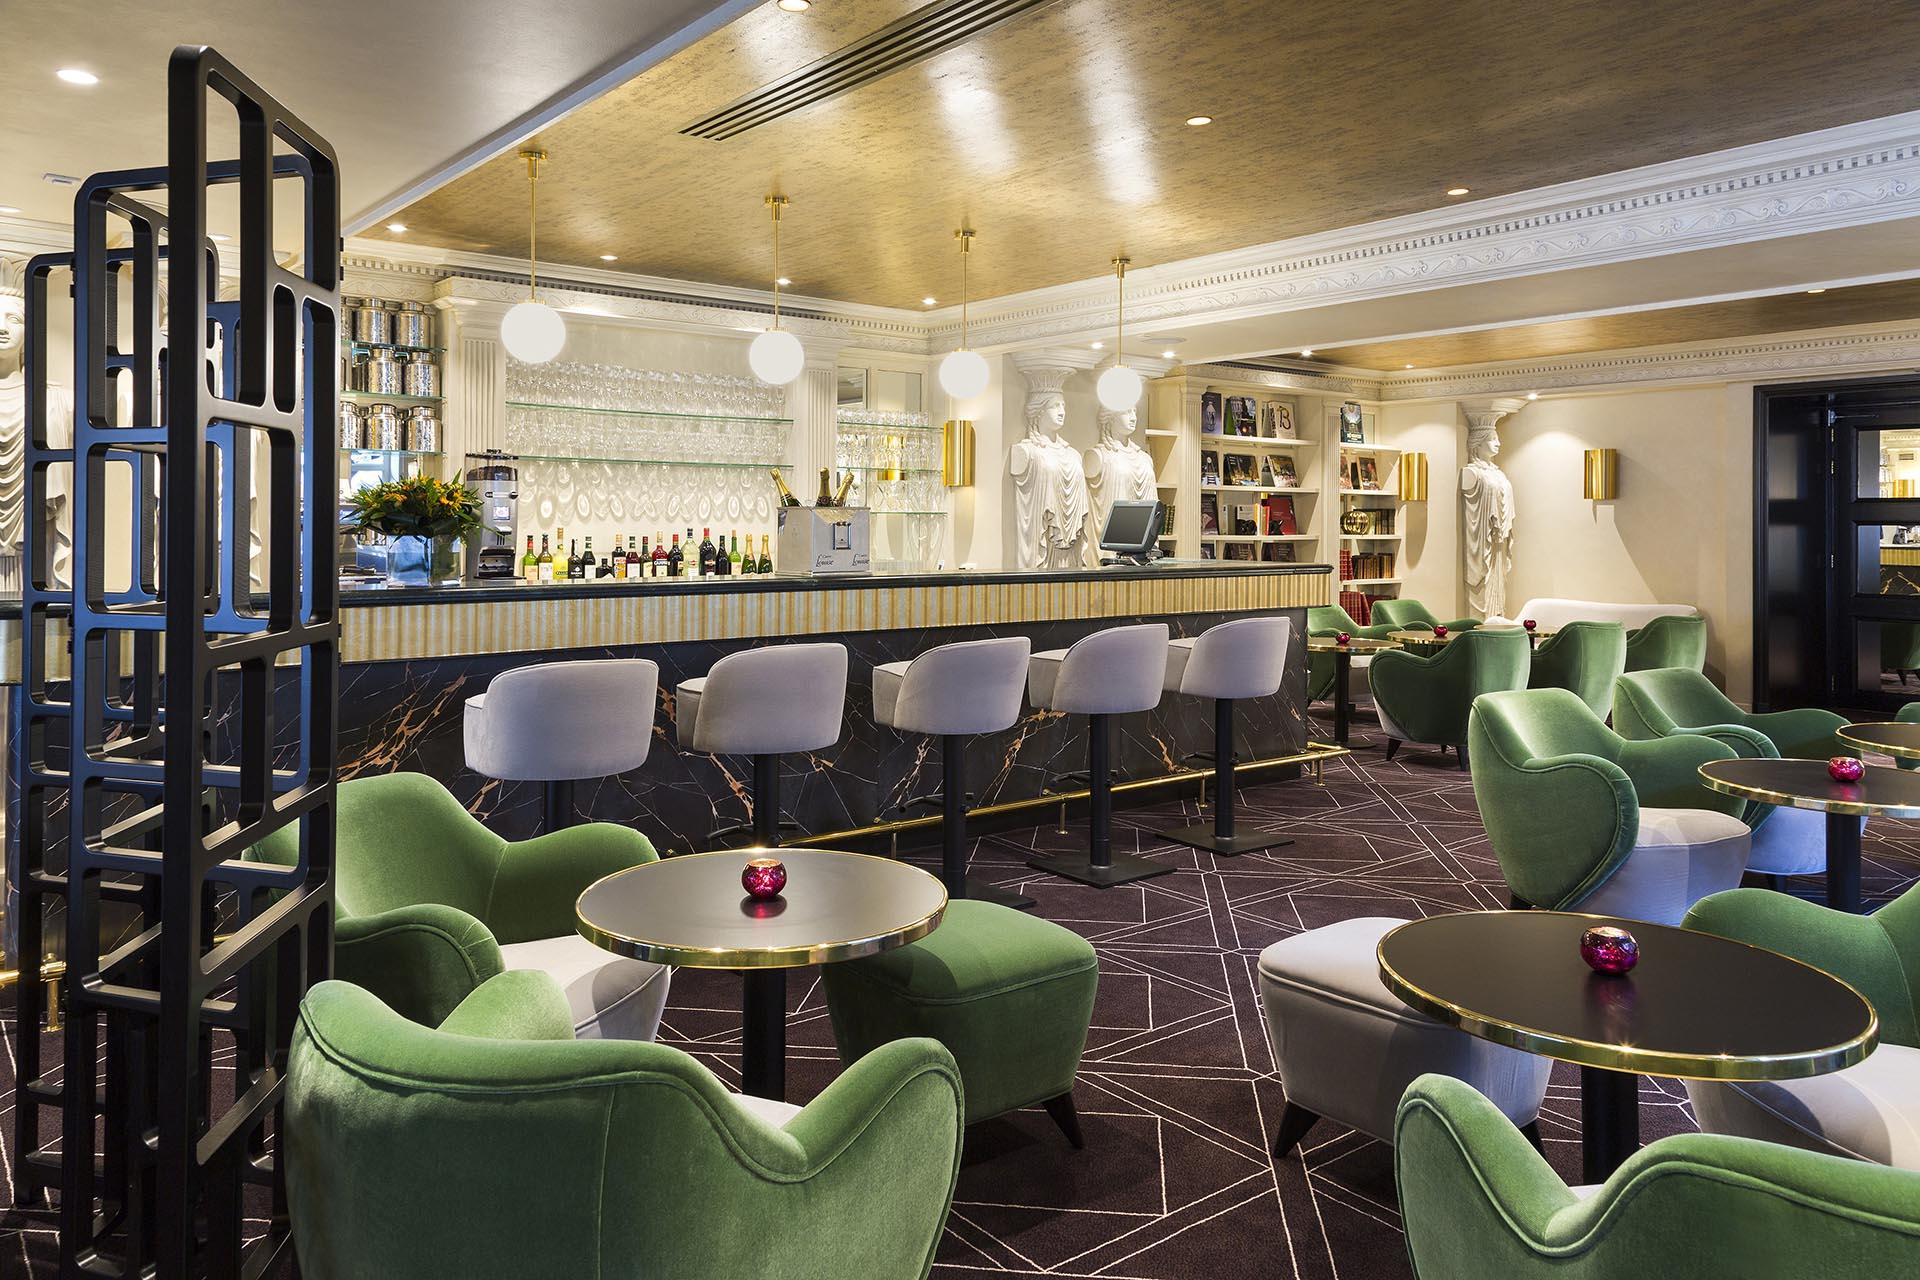 The Avenue Bar at Avenue Louise Brussels